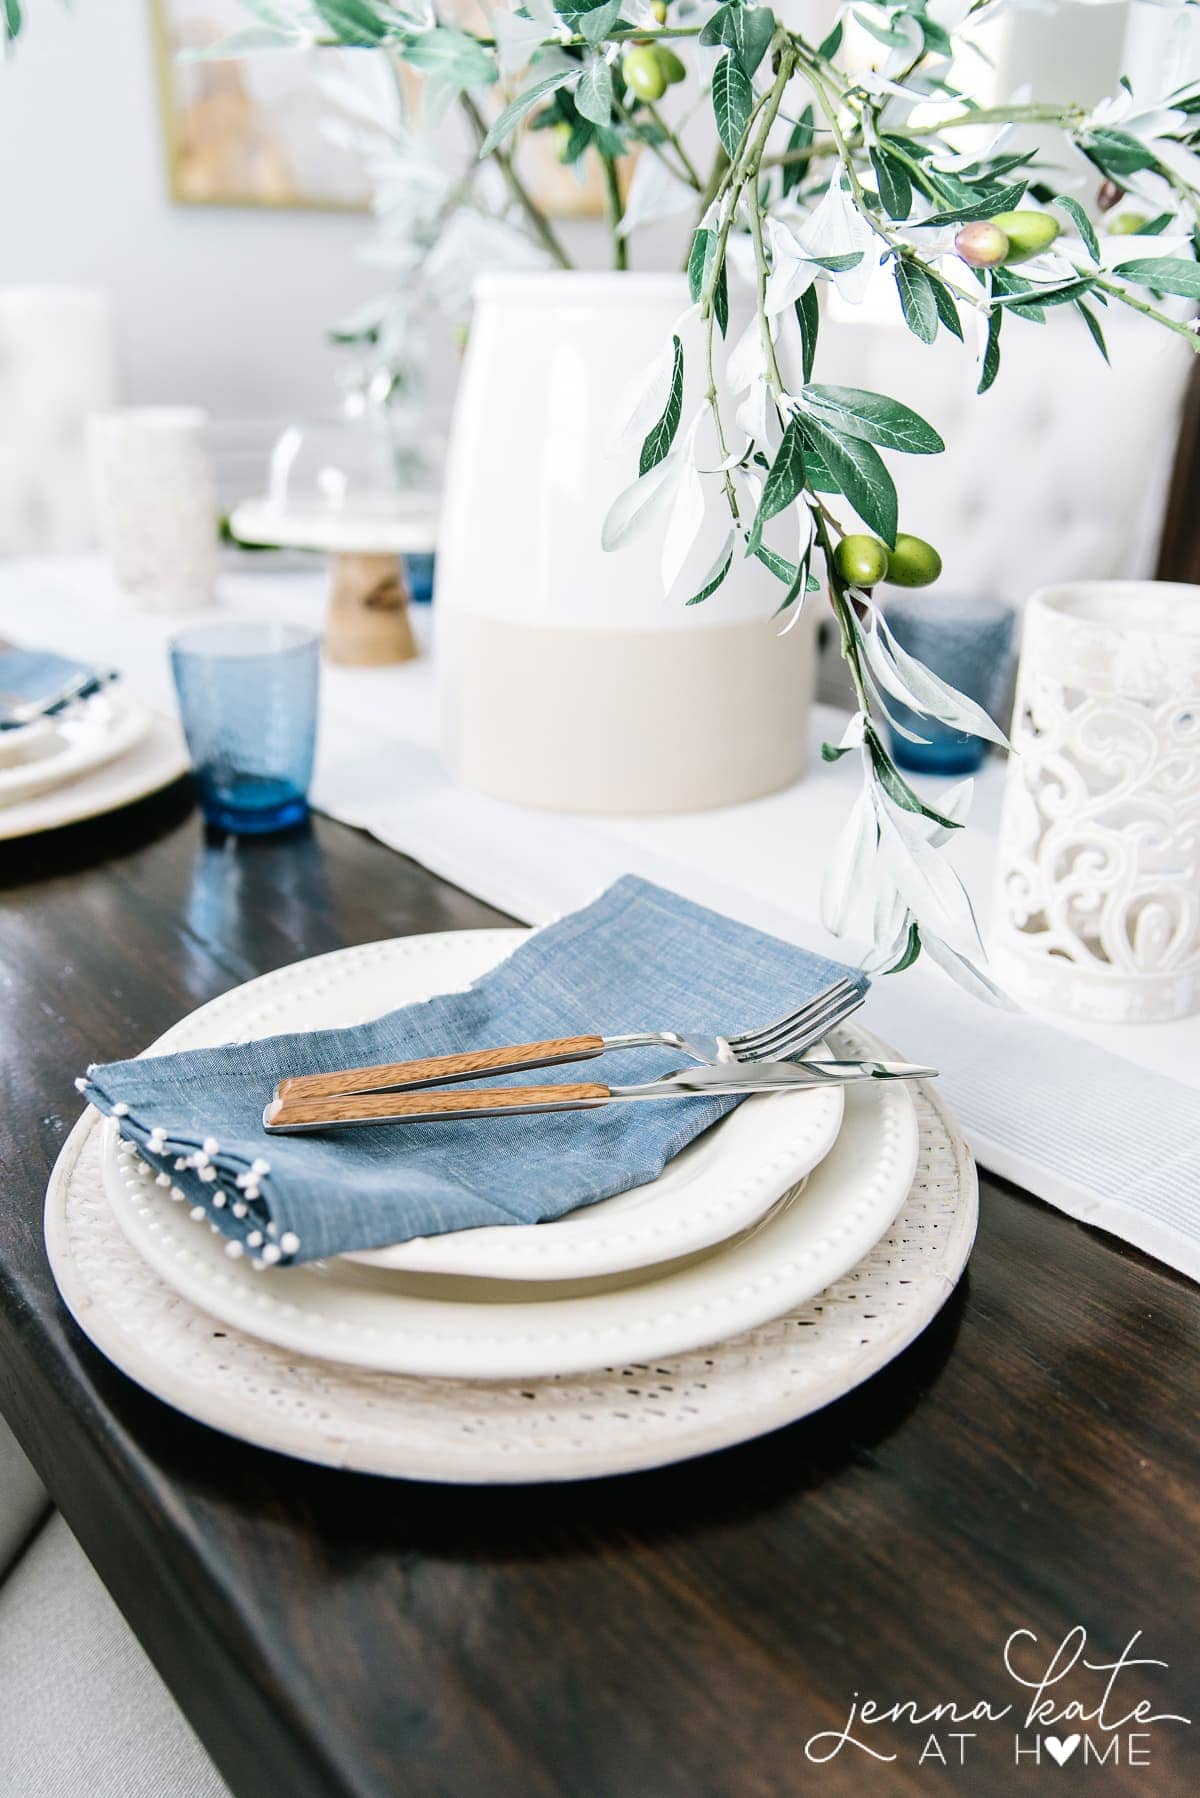 The blue linen napkins and coastal blue glassware give this coastal inspired tablescape pops of color